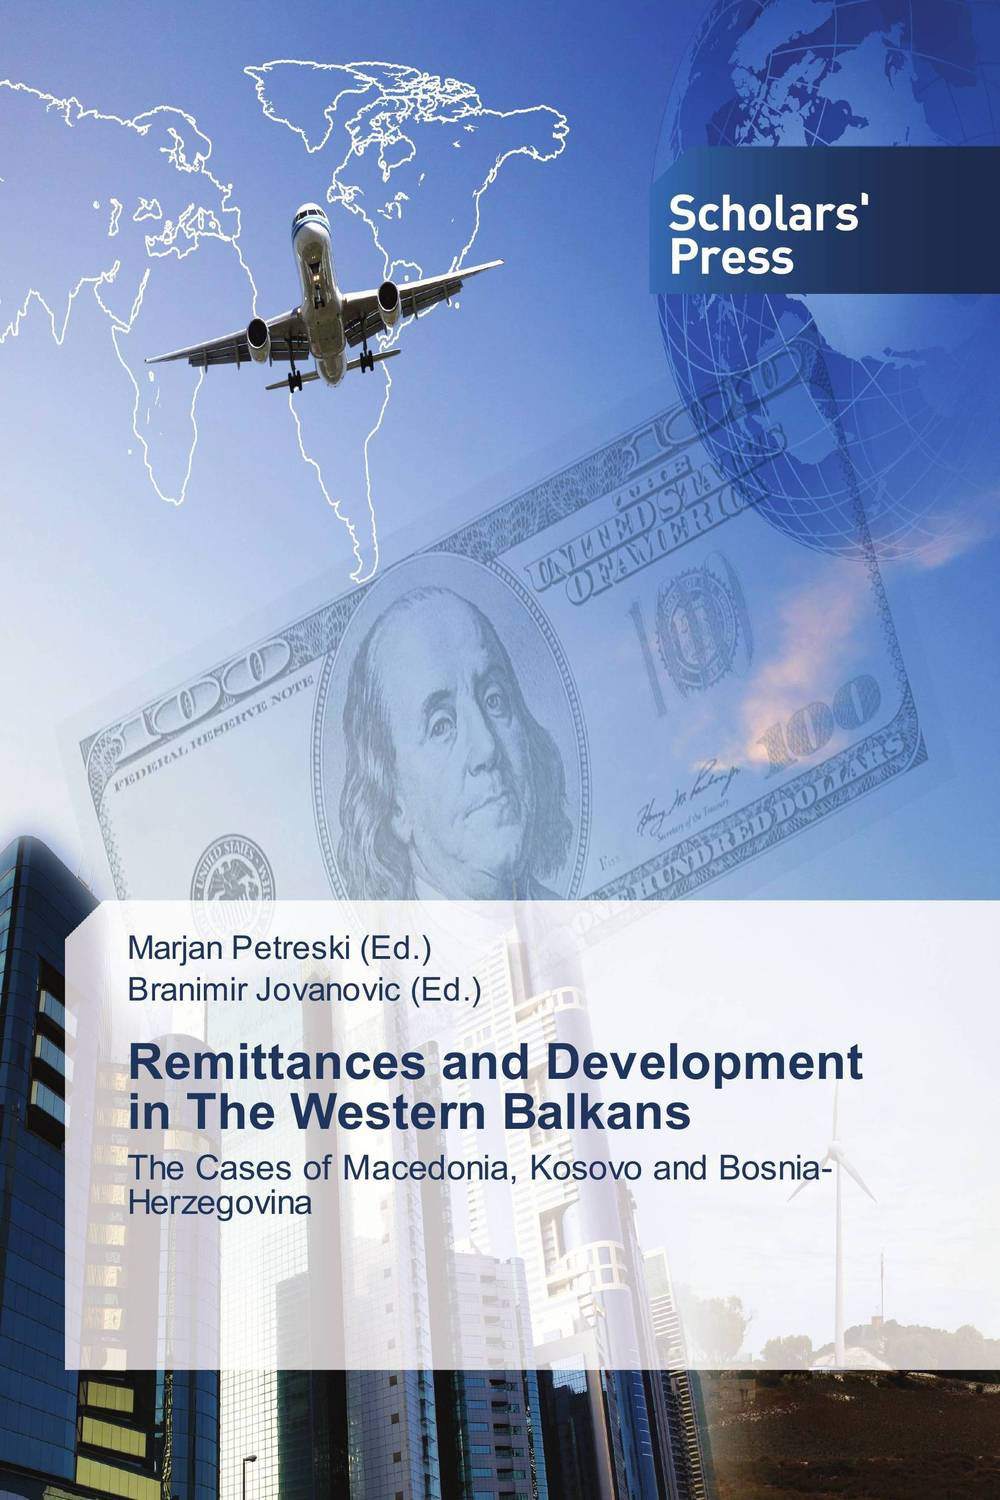 Remittances and Development in The Western Balkans suggest suggest pb 1026945